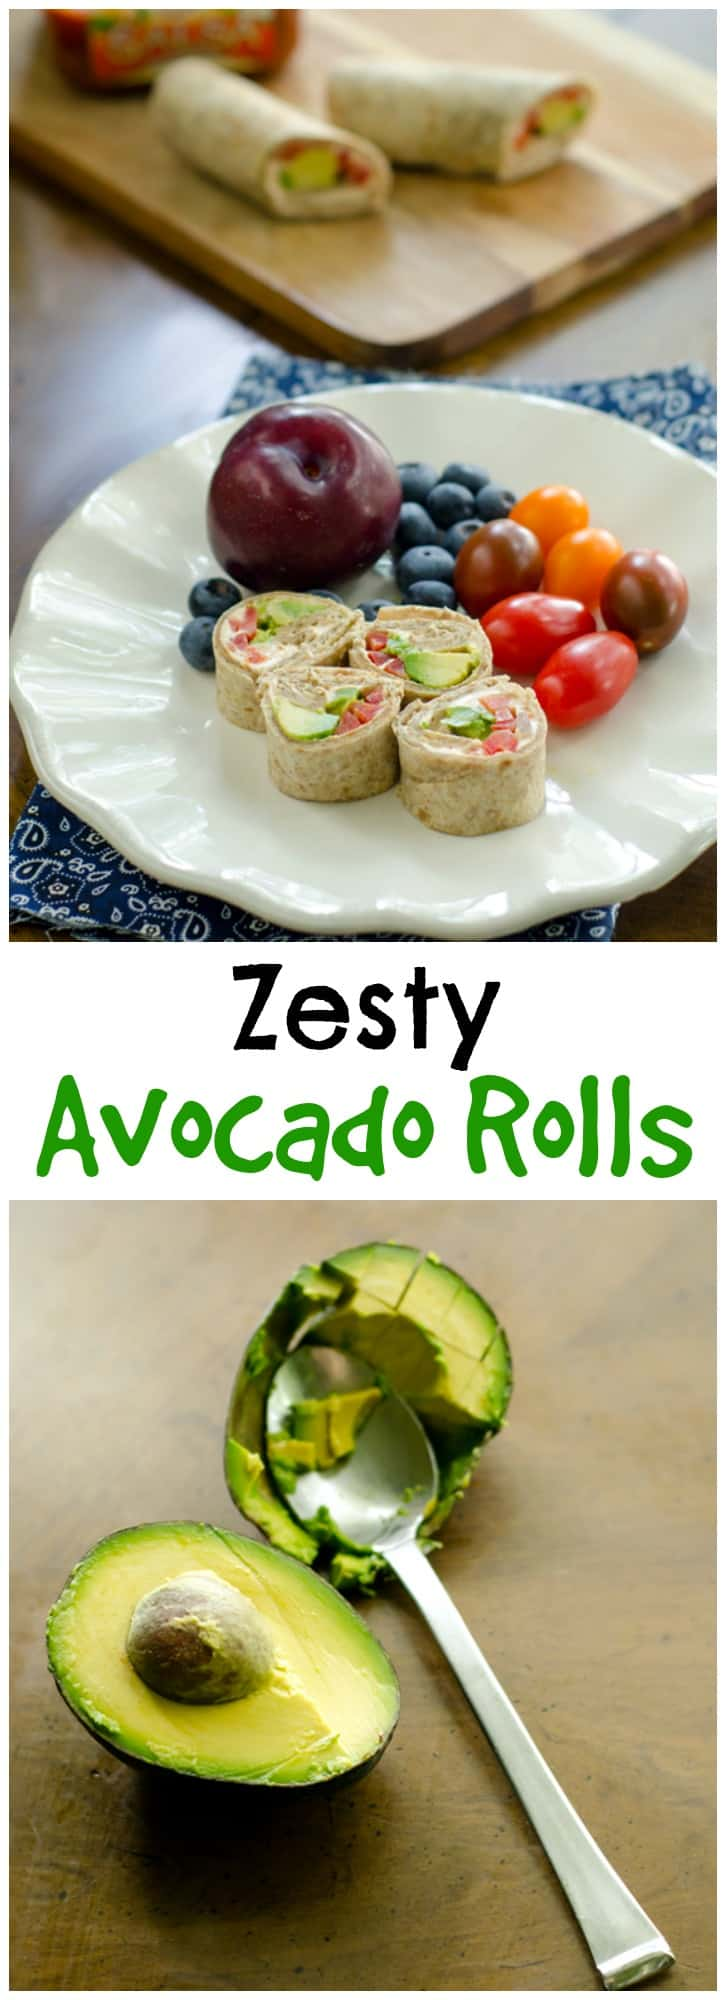 These avocado rolls are easy to make and beyond delicious. Being fish ...